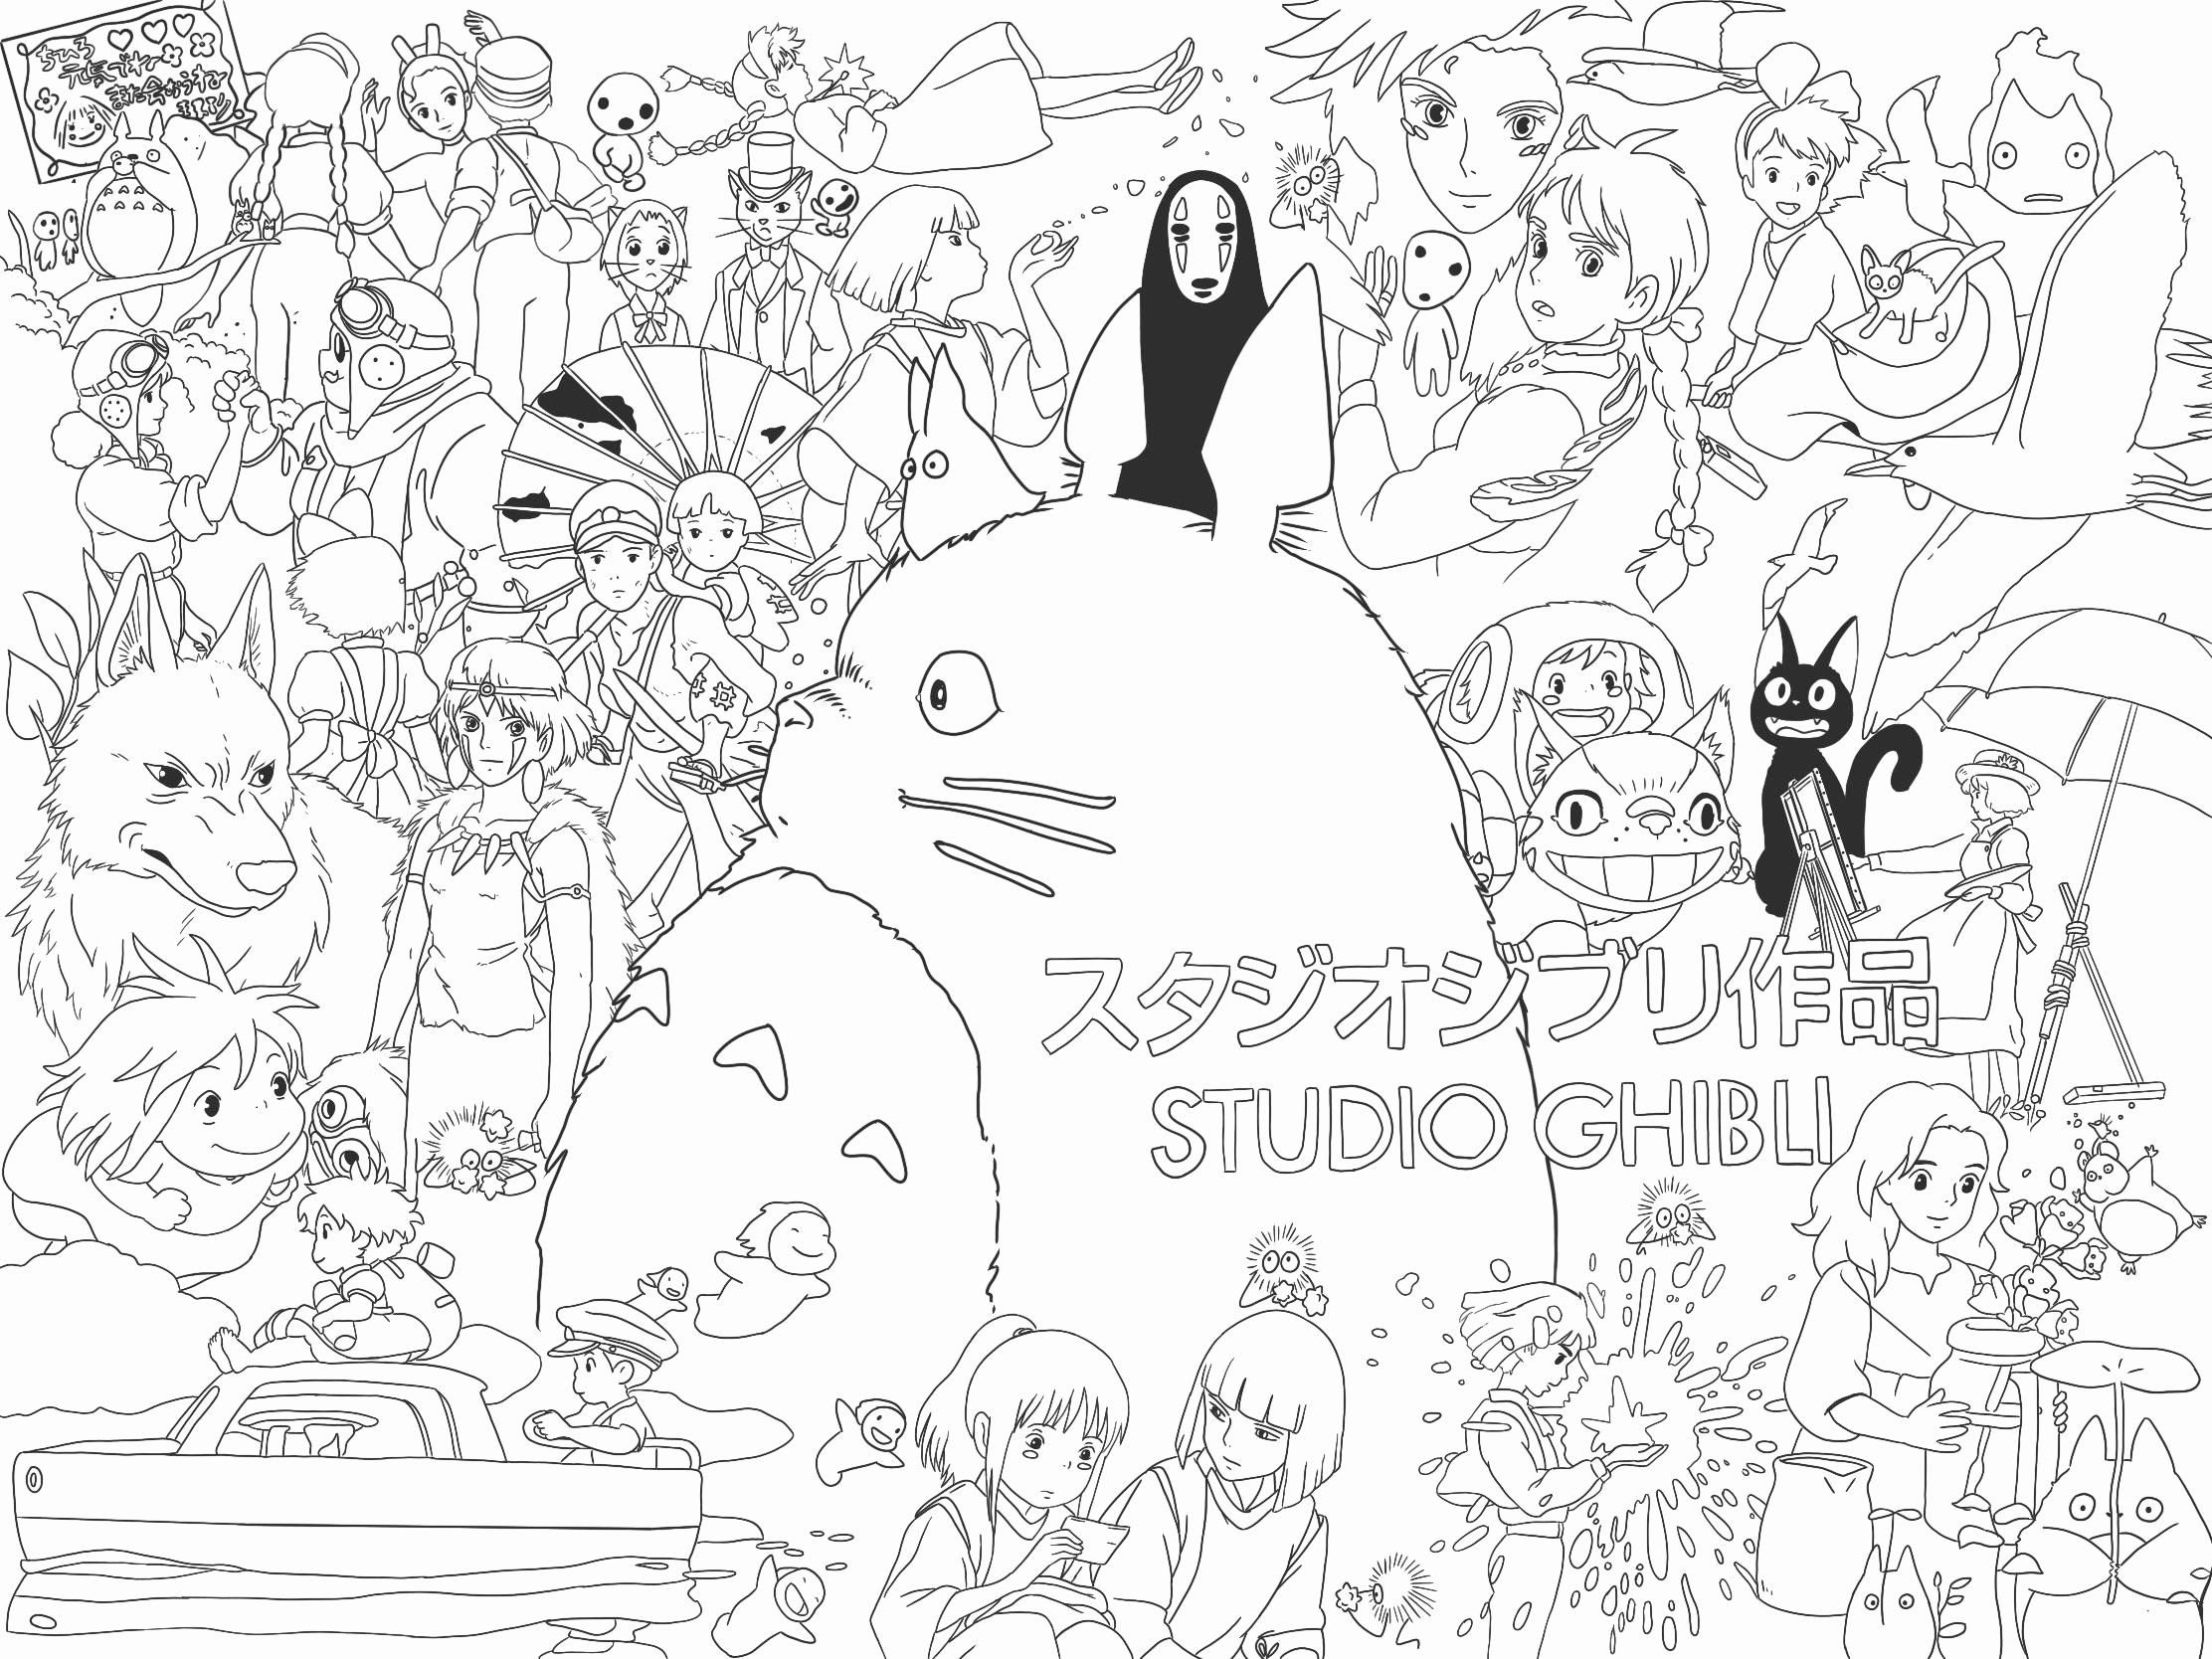 Studio Ghibli Coloring Book Elegant I Made Myself A Wallpaper Coloring Book Page Traced Cat Coloring Book Coloring Book Art Coloring Books